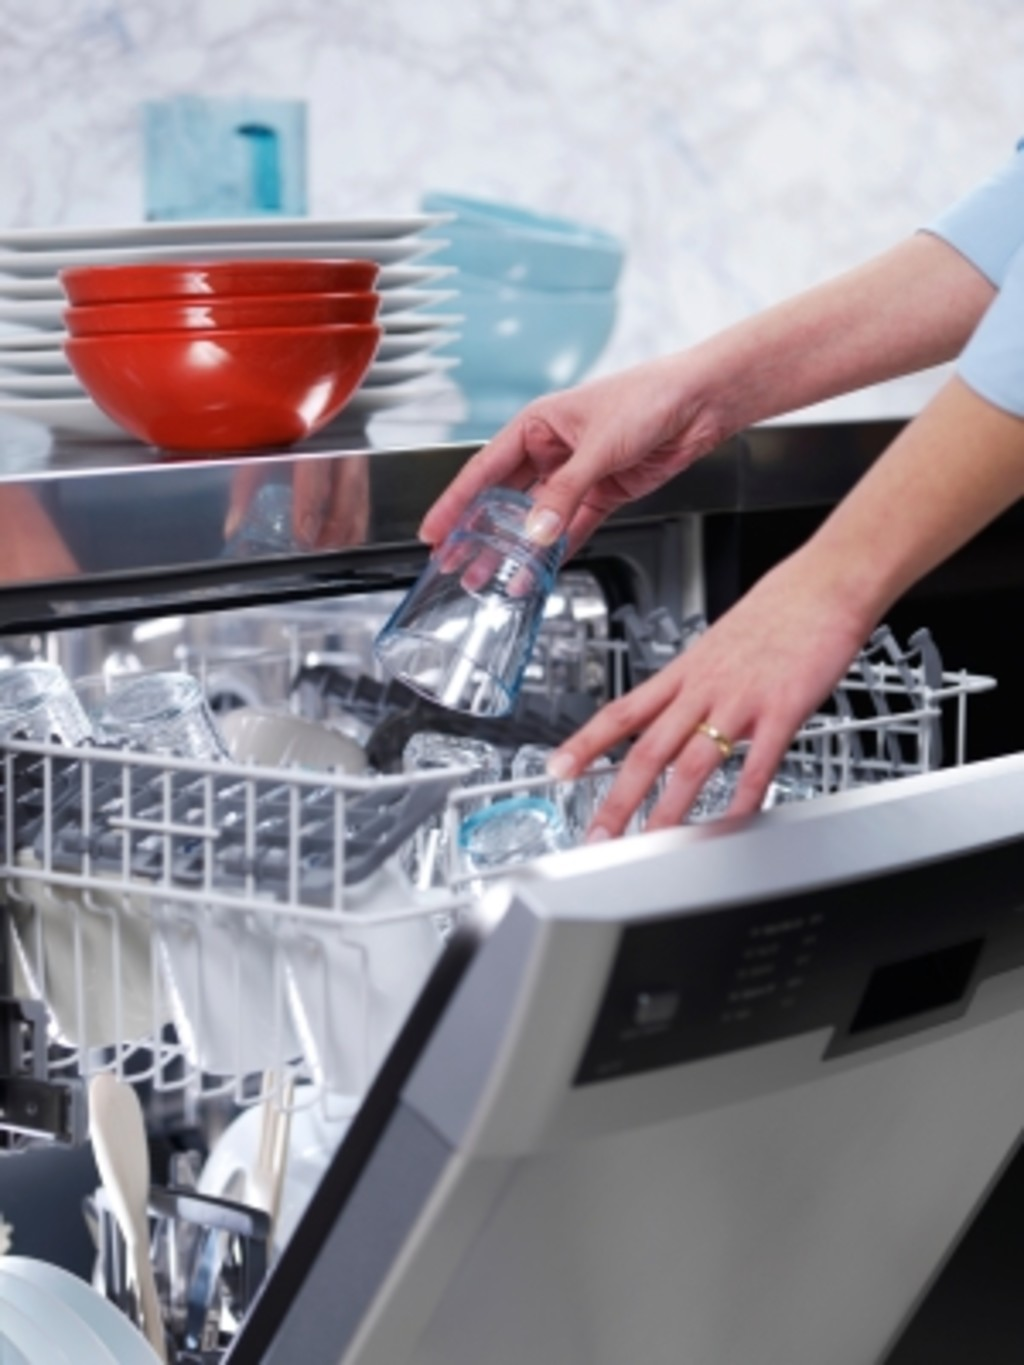 M-4 Appliance Repair - Dishwasher Repair